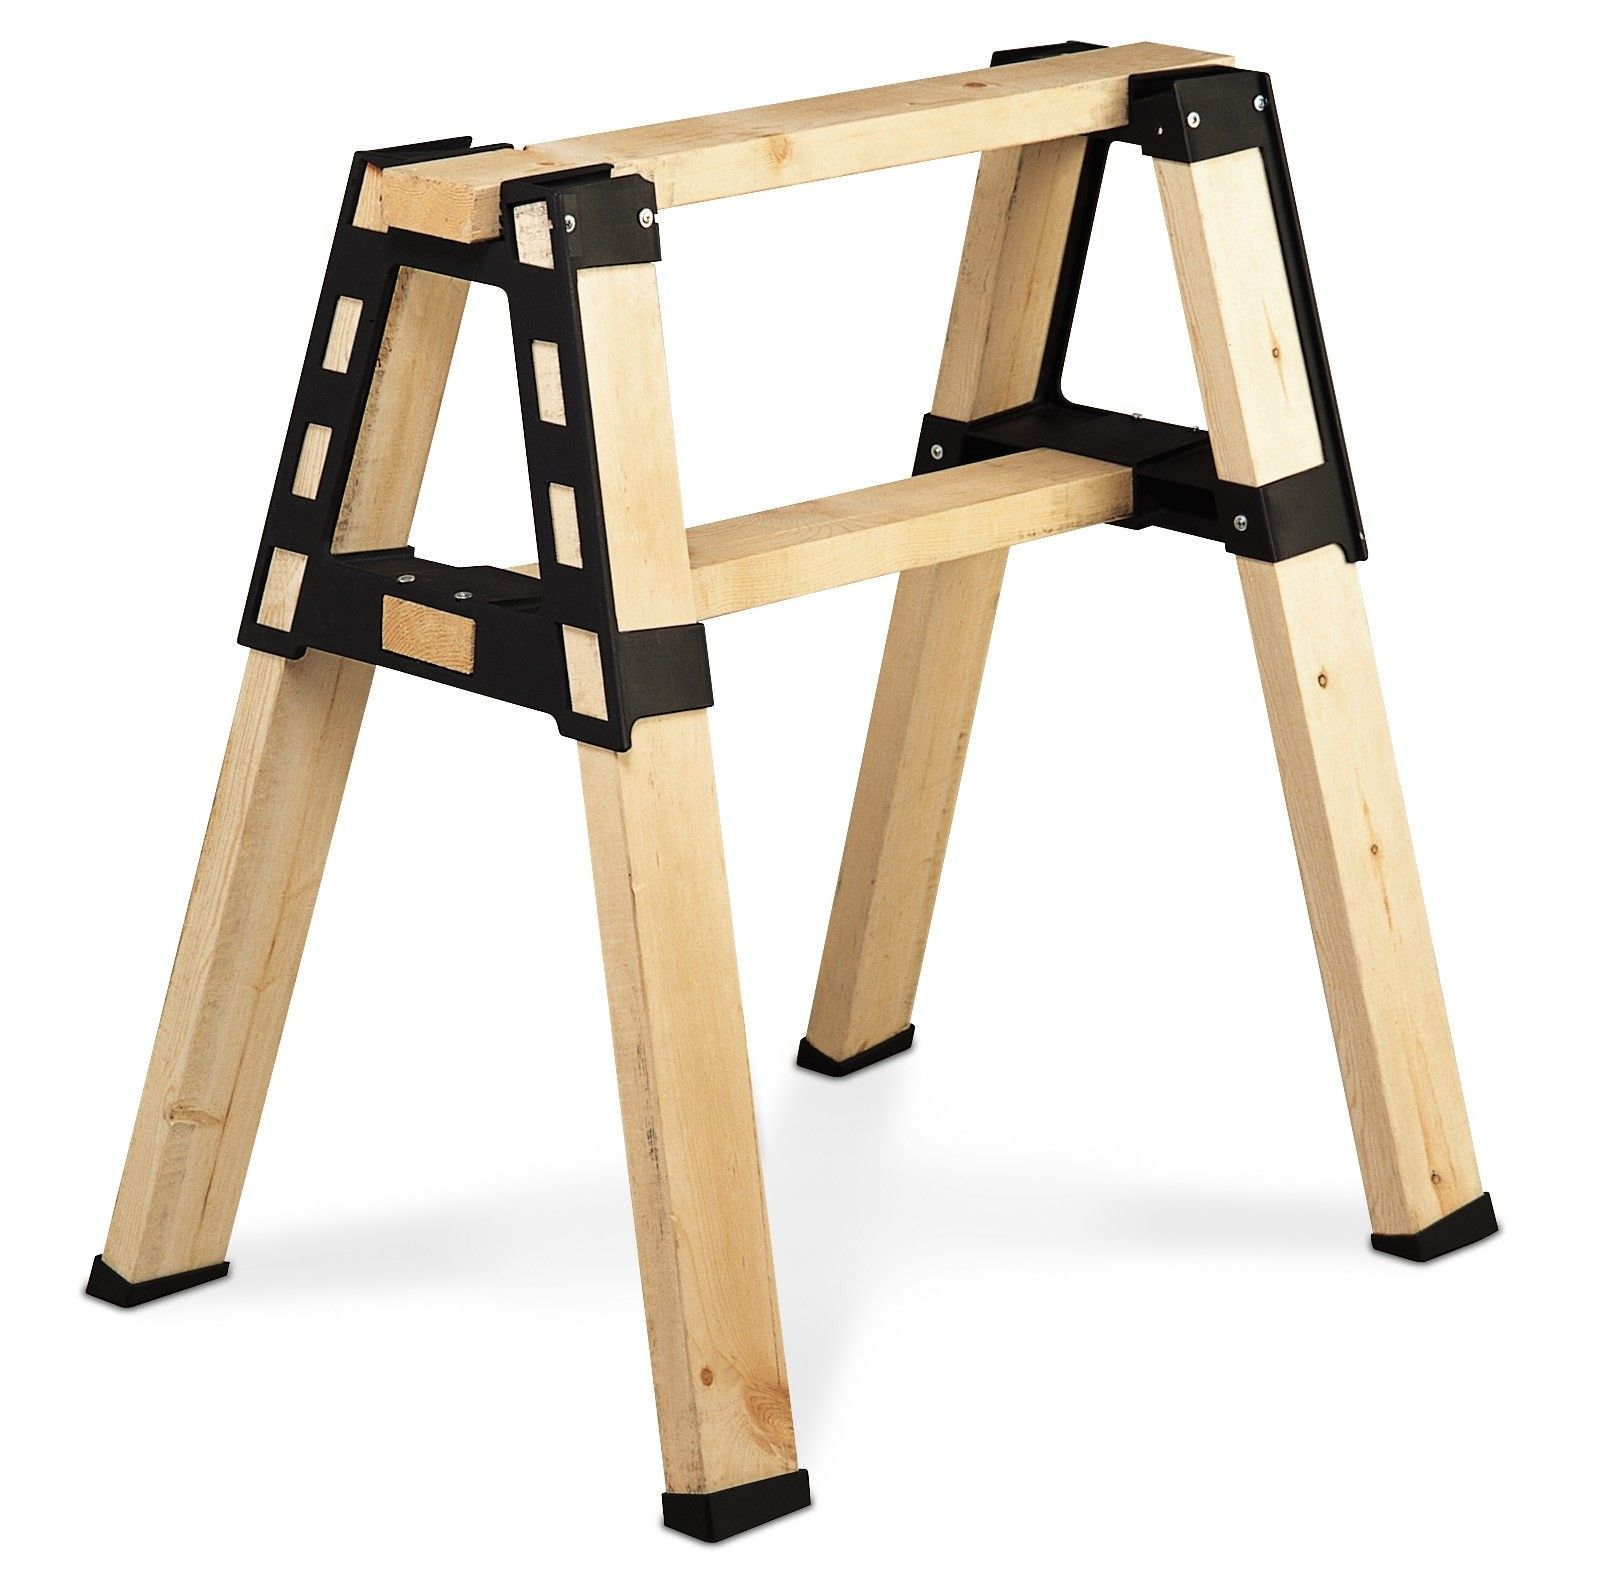 Sawhorse Bracket Easy woodworking projects, Diy